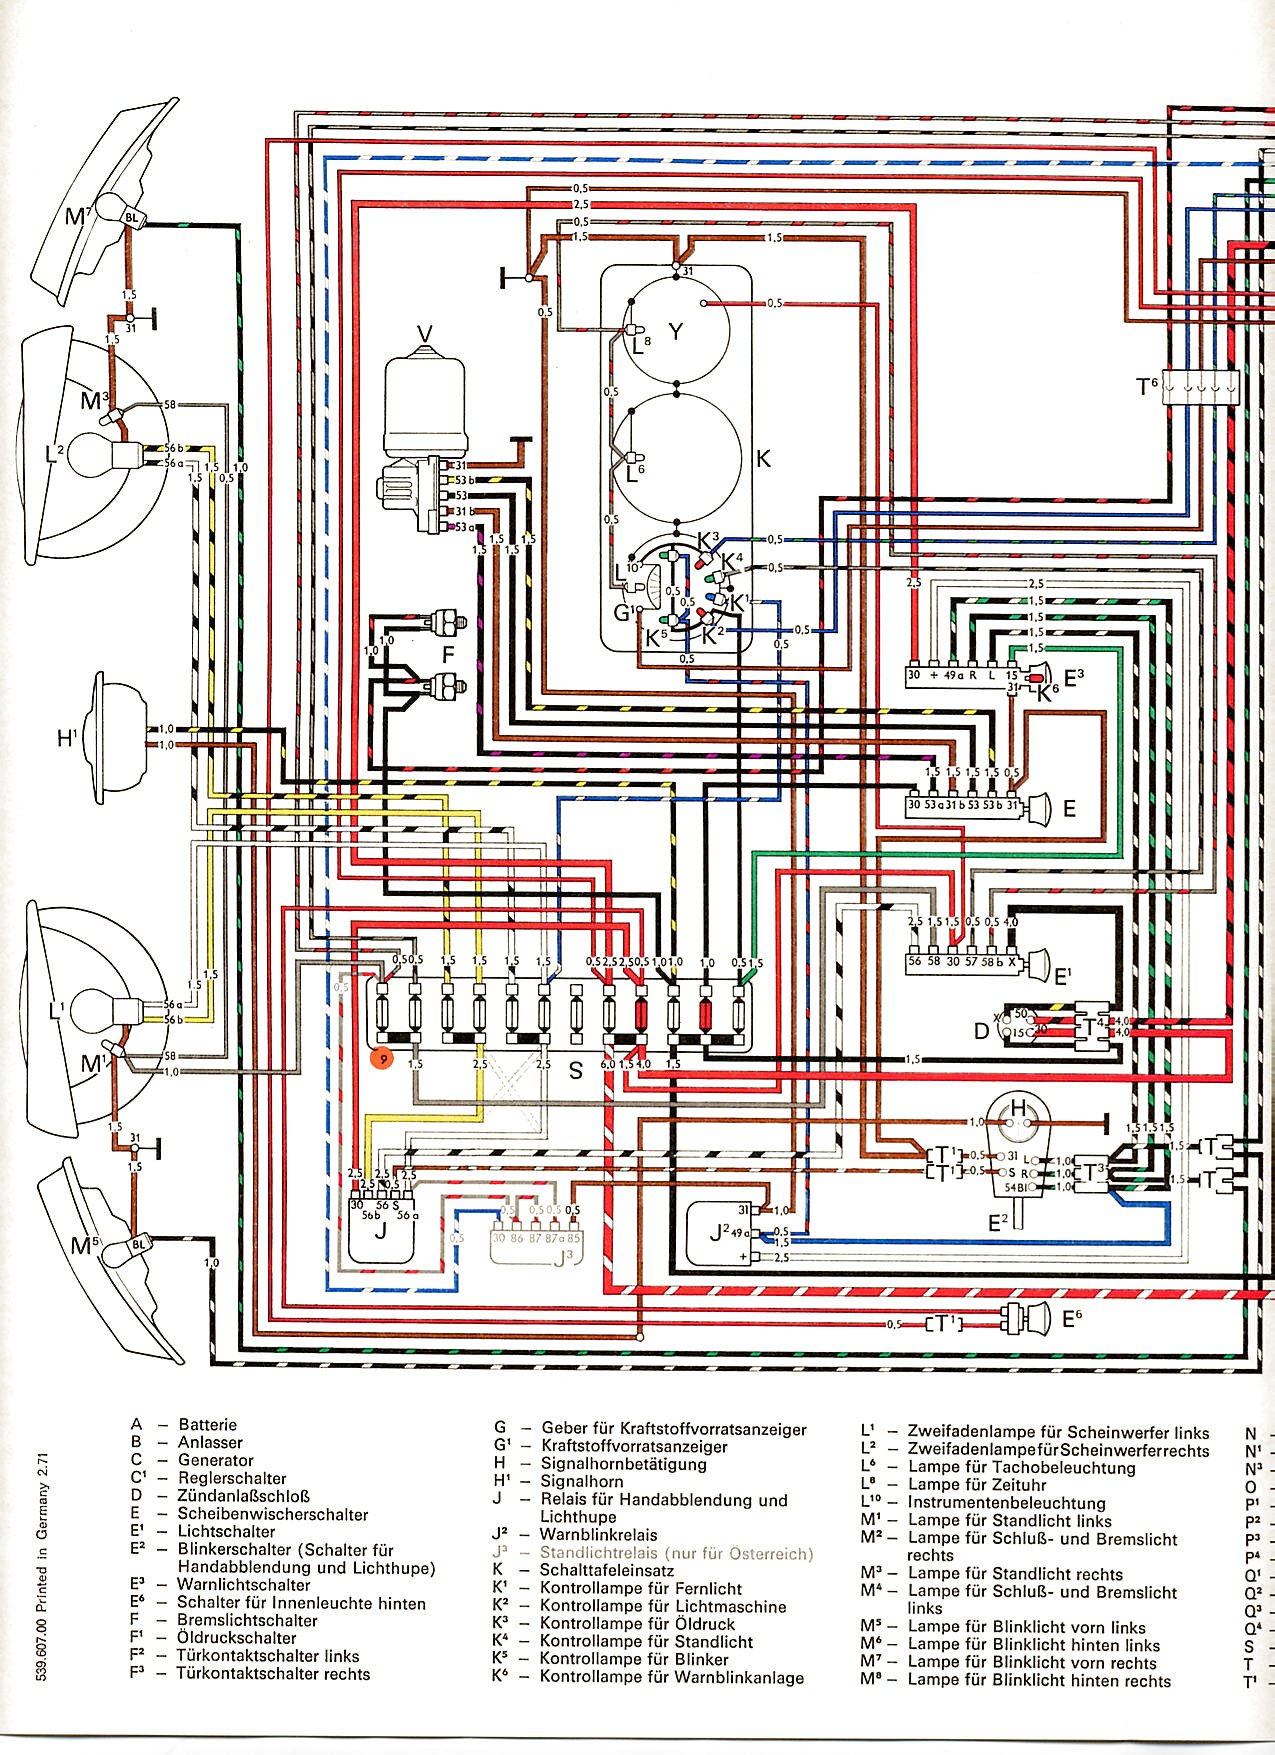 Free Cadillac Wiring Diagram 2003 Wire Center For Deville Vintagebus Com Vw Bus And Other Diagrams Rh